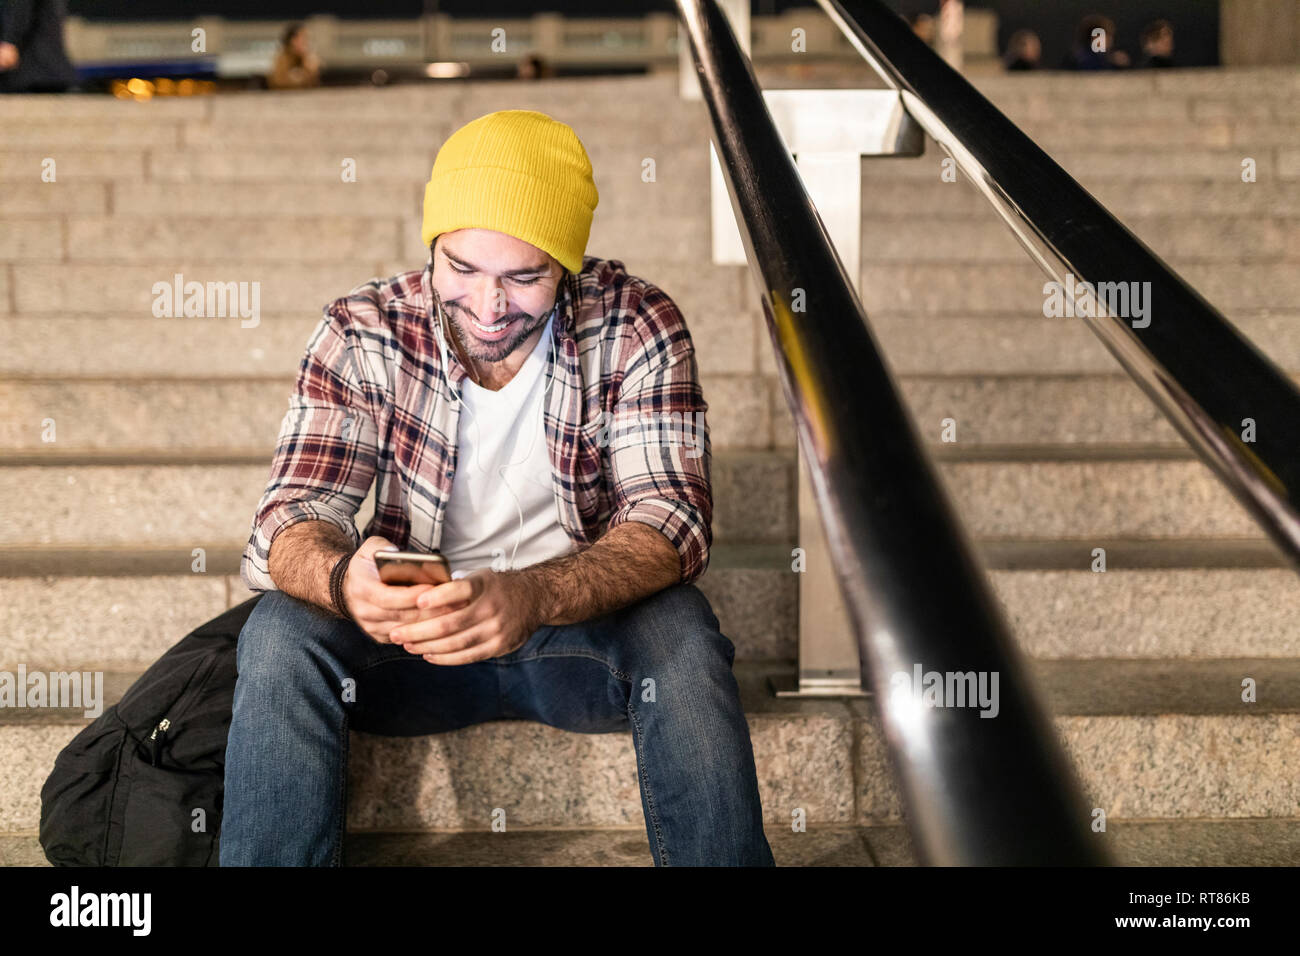 UK, London, man sitting on a staircase and looking at his phone on a night commute - Stock Image